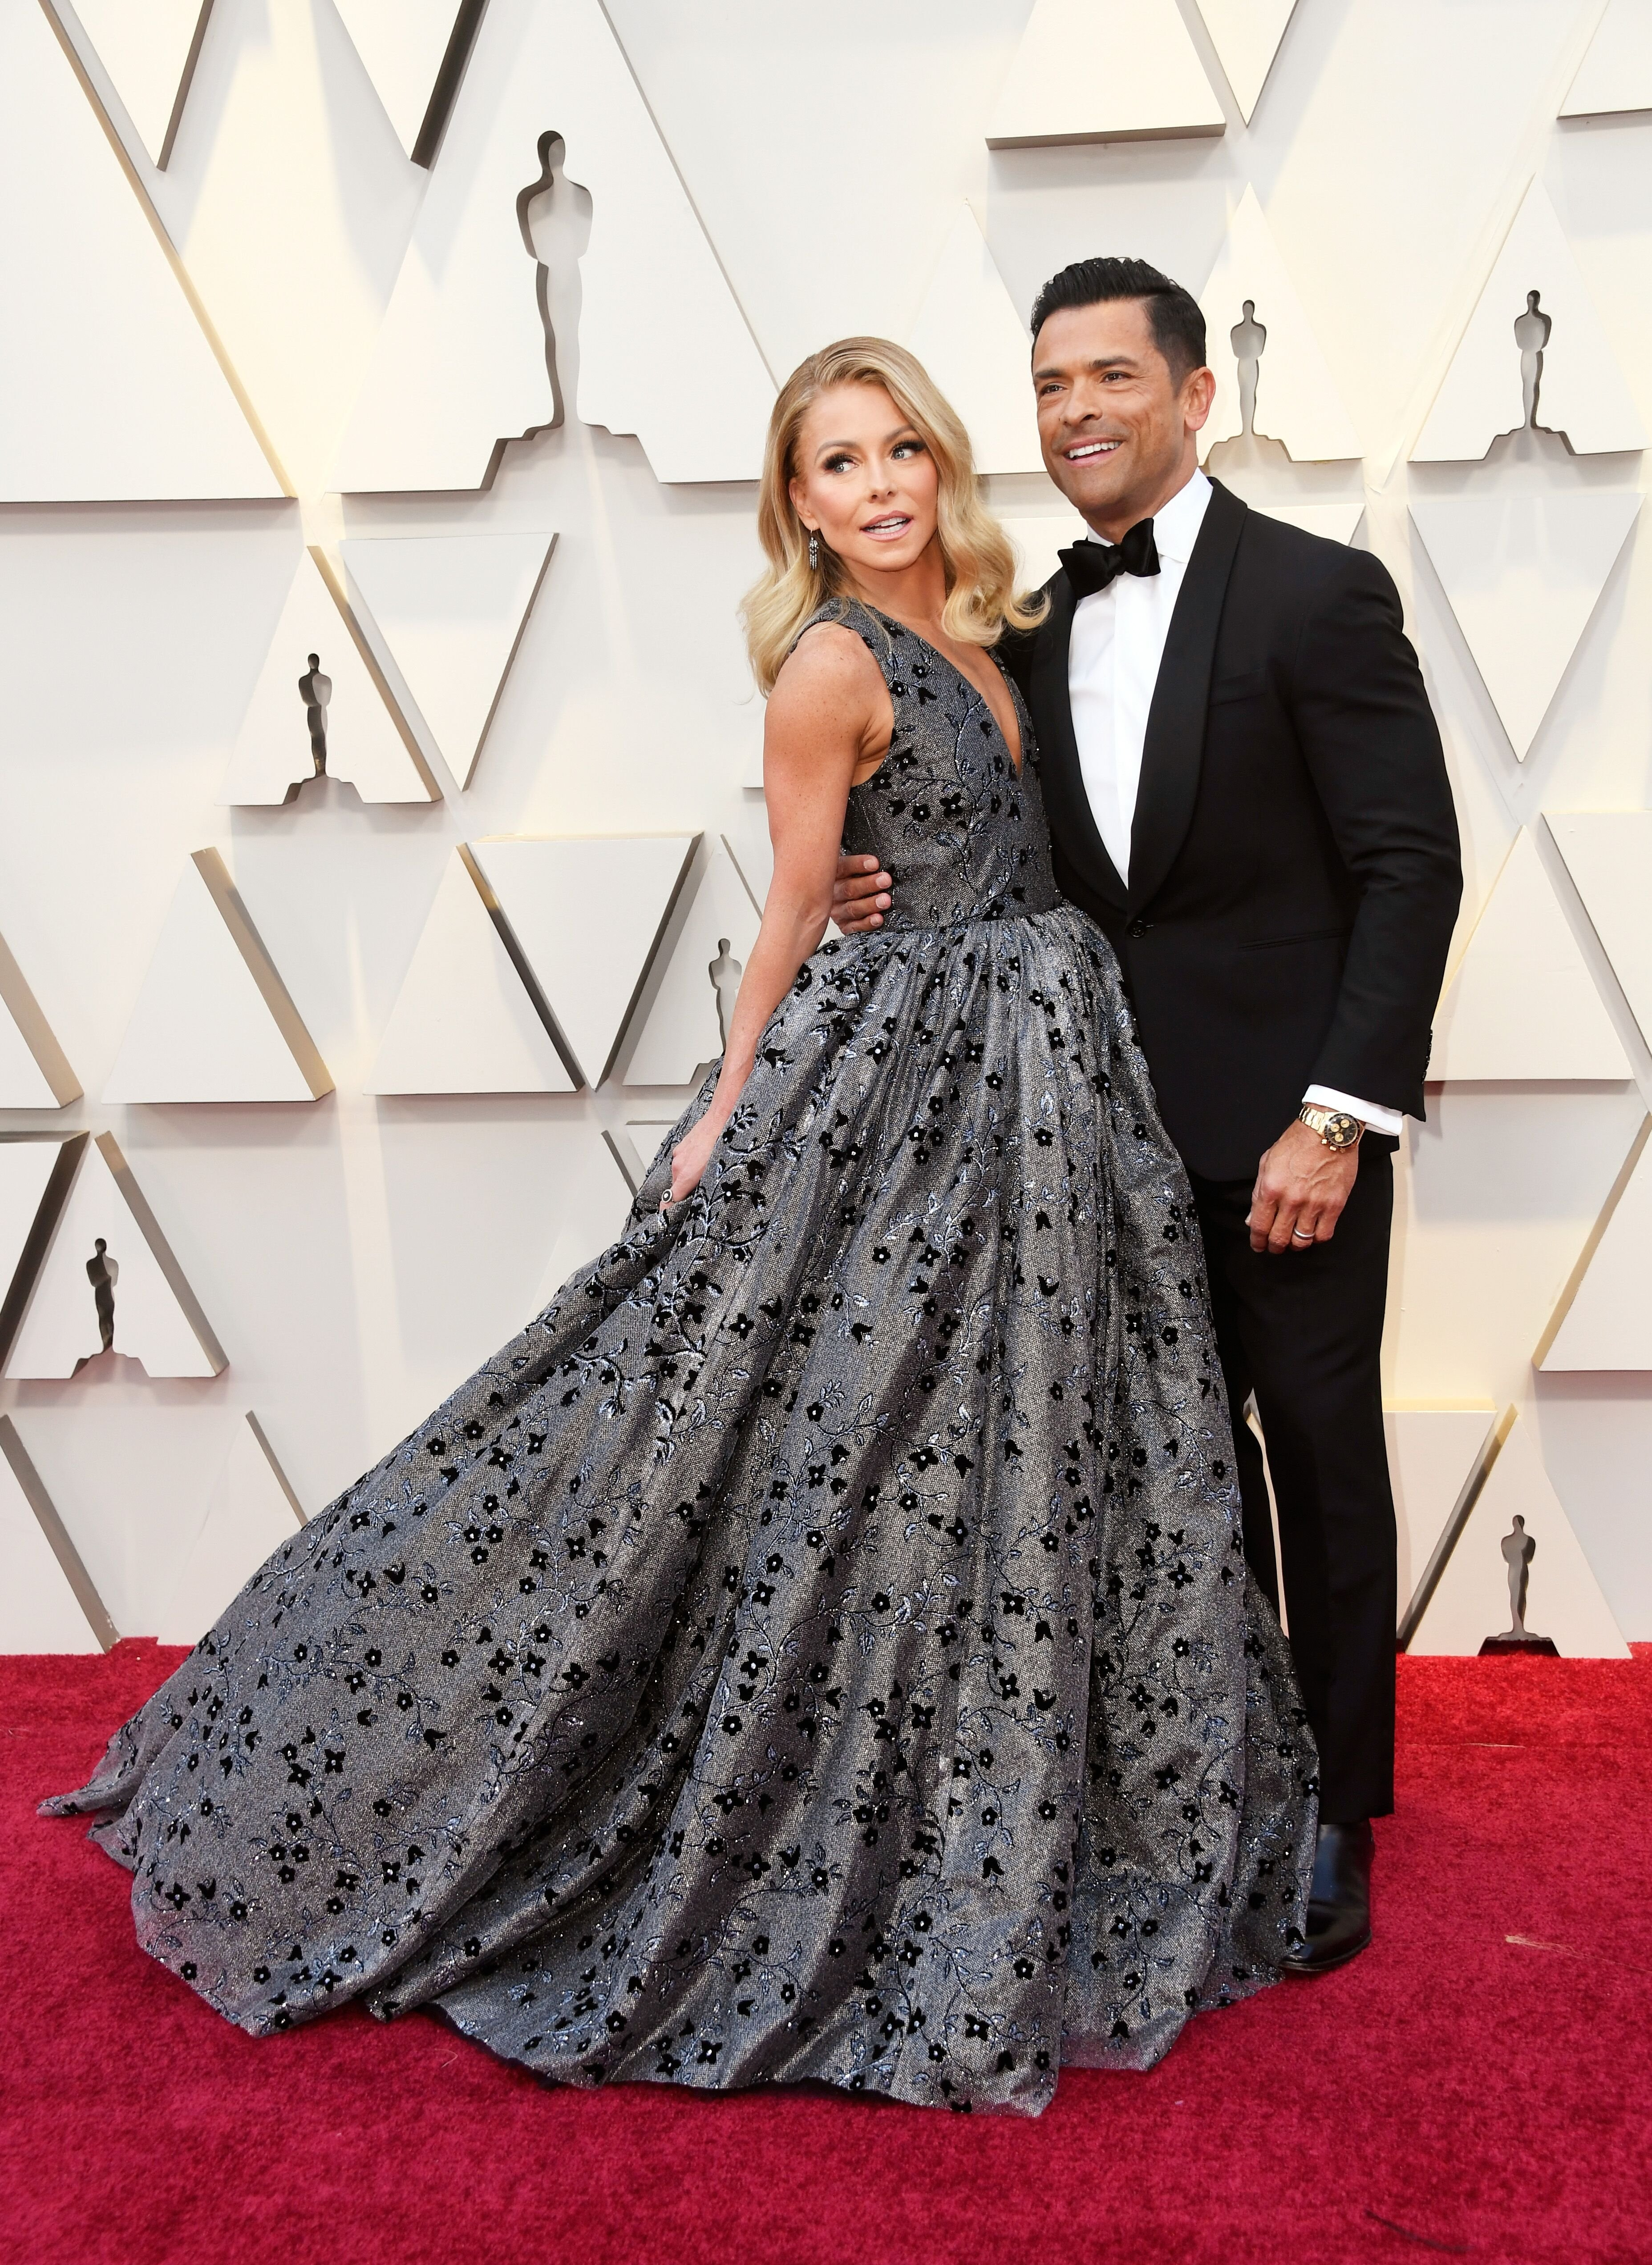 Kelly Ripa and husband Mark Consuelos at the 2019 Oscars | Source: Getty Images